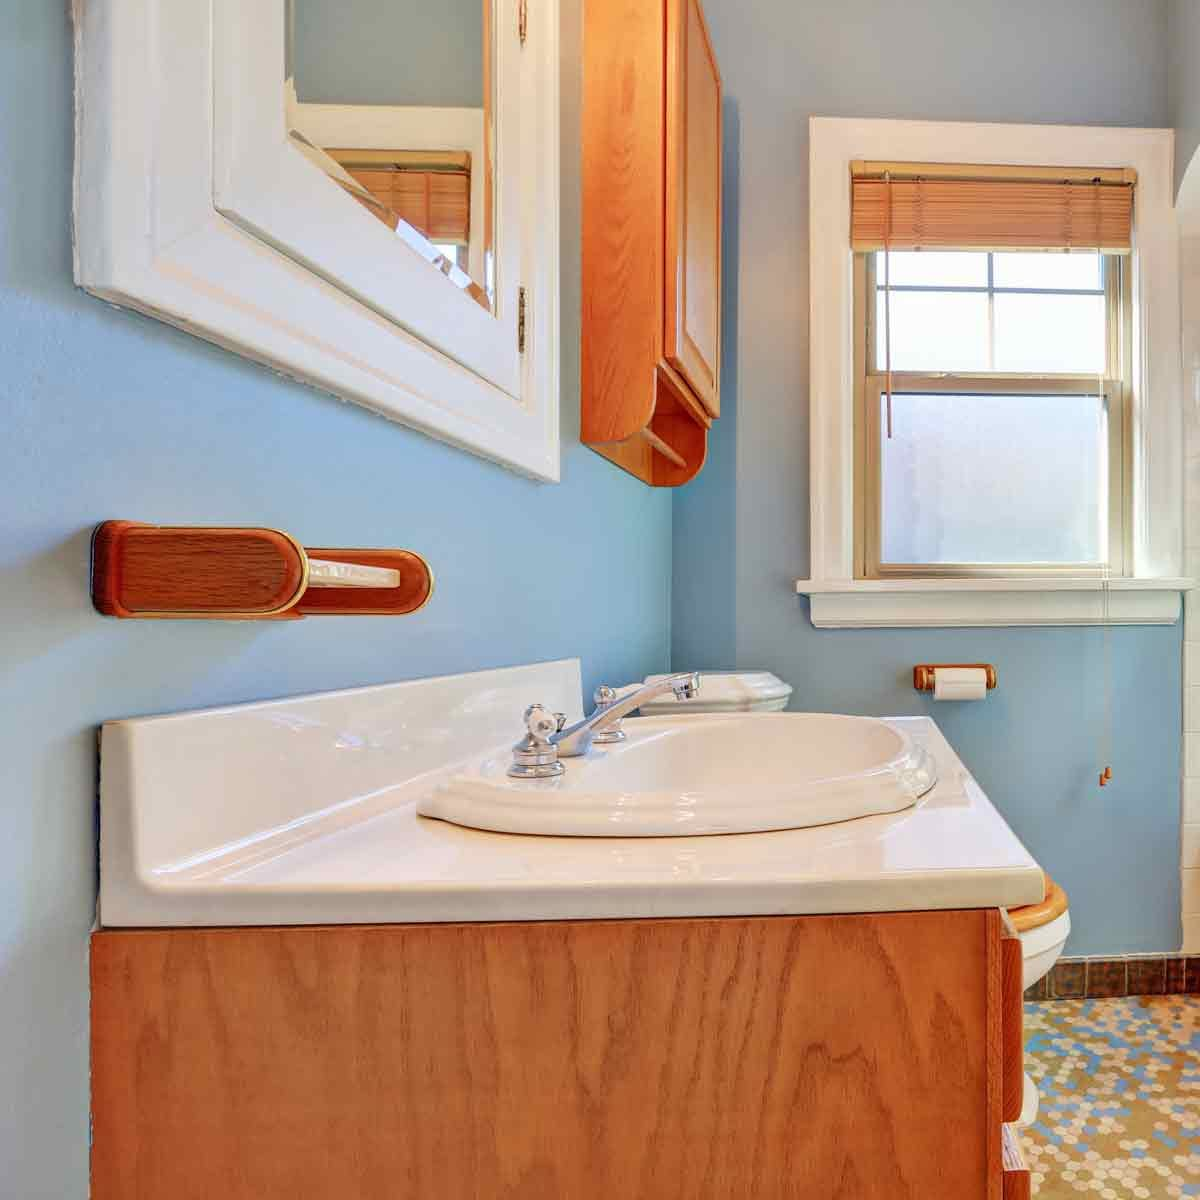 Pale-blue-colorful-bathroom-interior-with-old-fashioned-ceramic-appliances-in-tudor-style-home